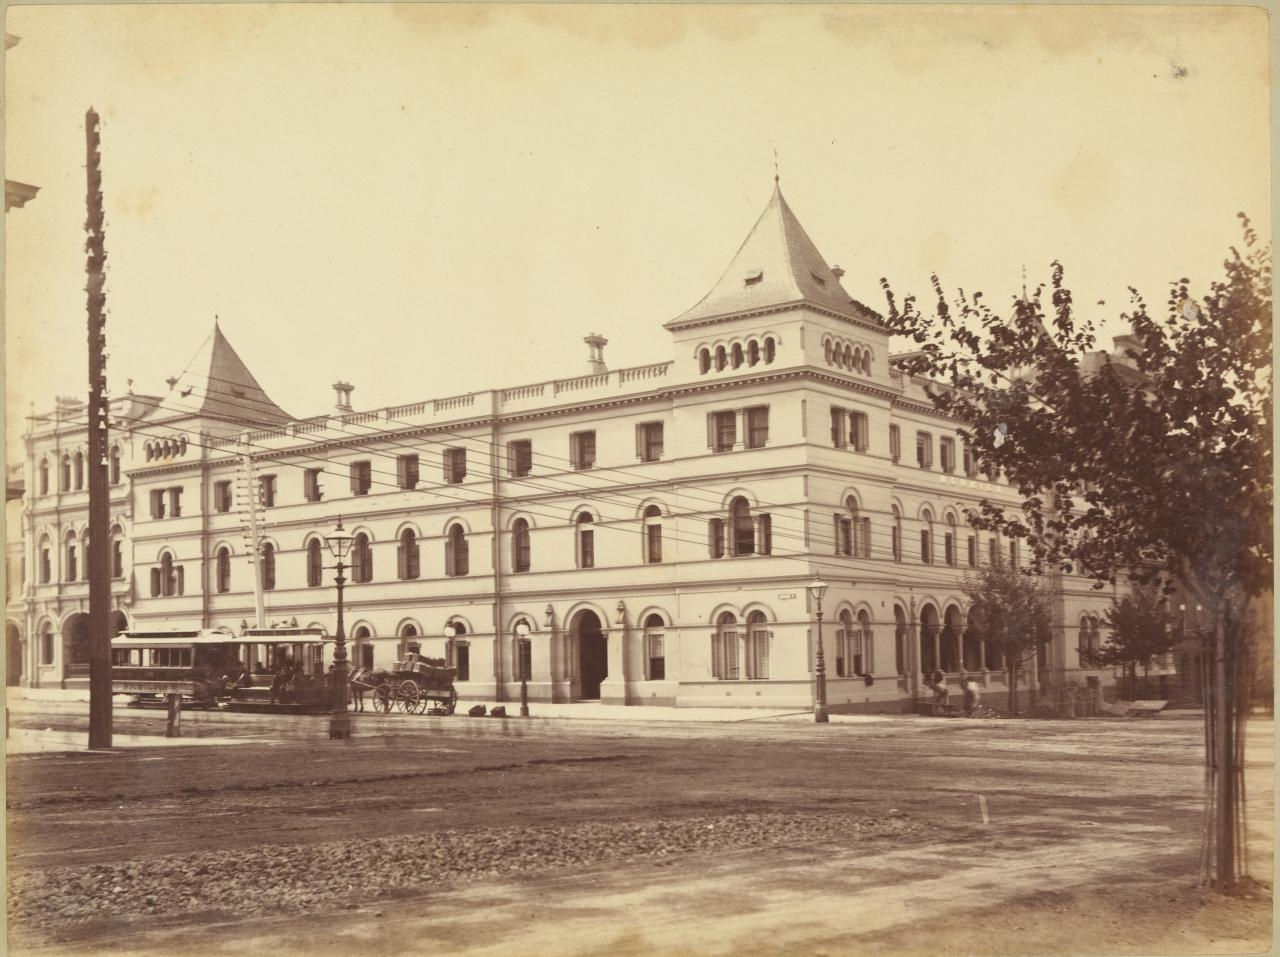 Menzies Hotel, Bourke and Williams Sts.